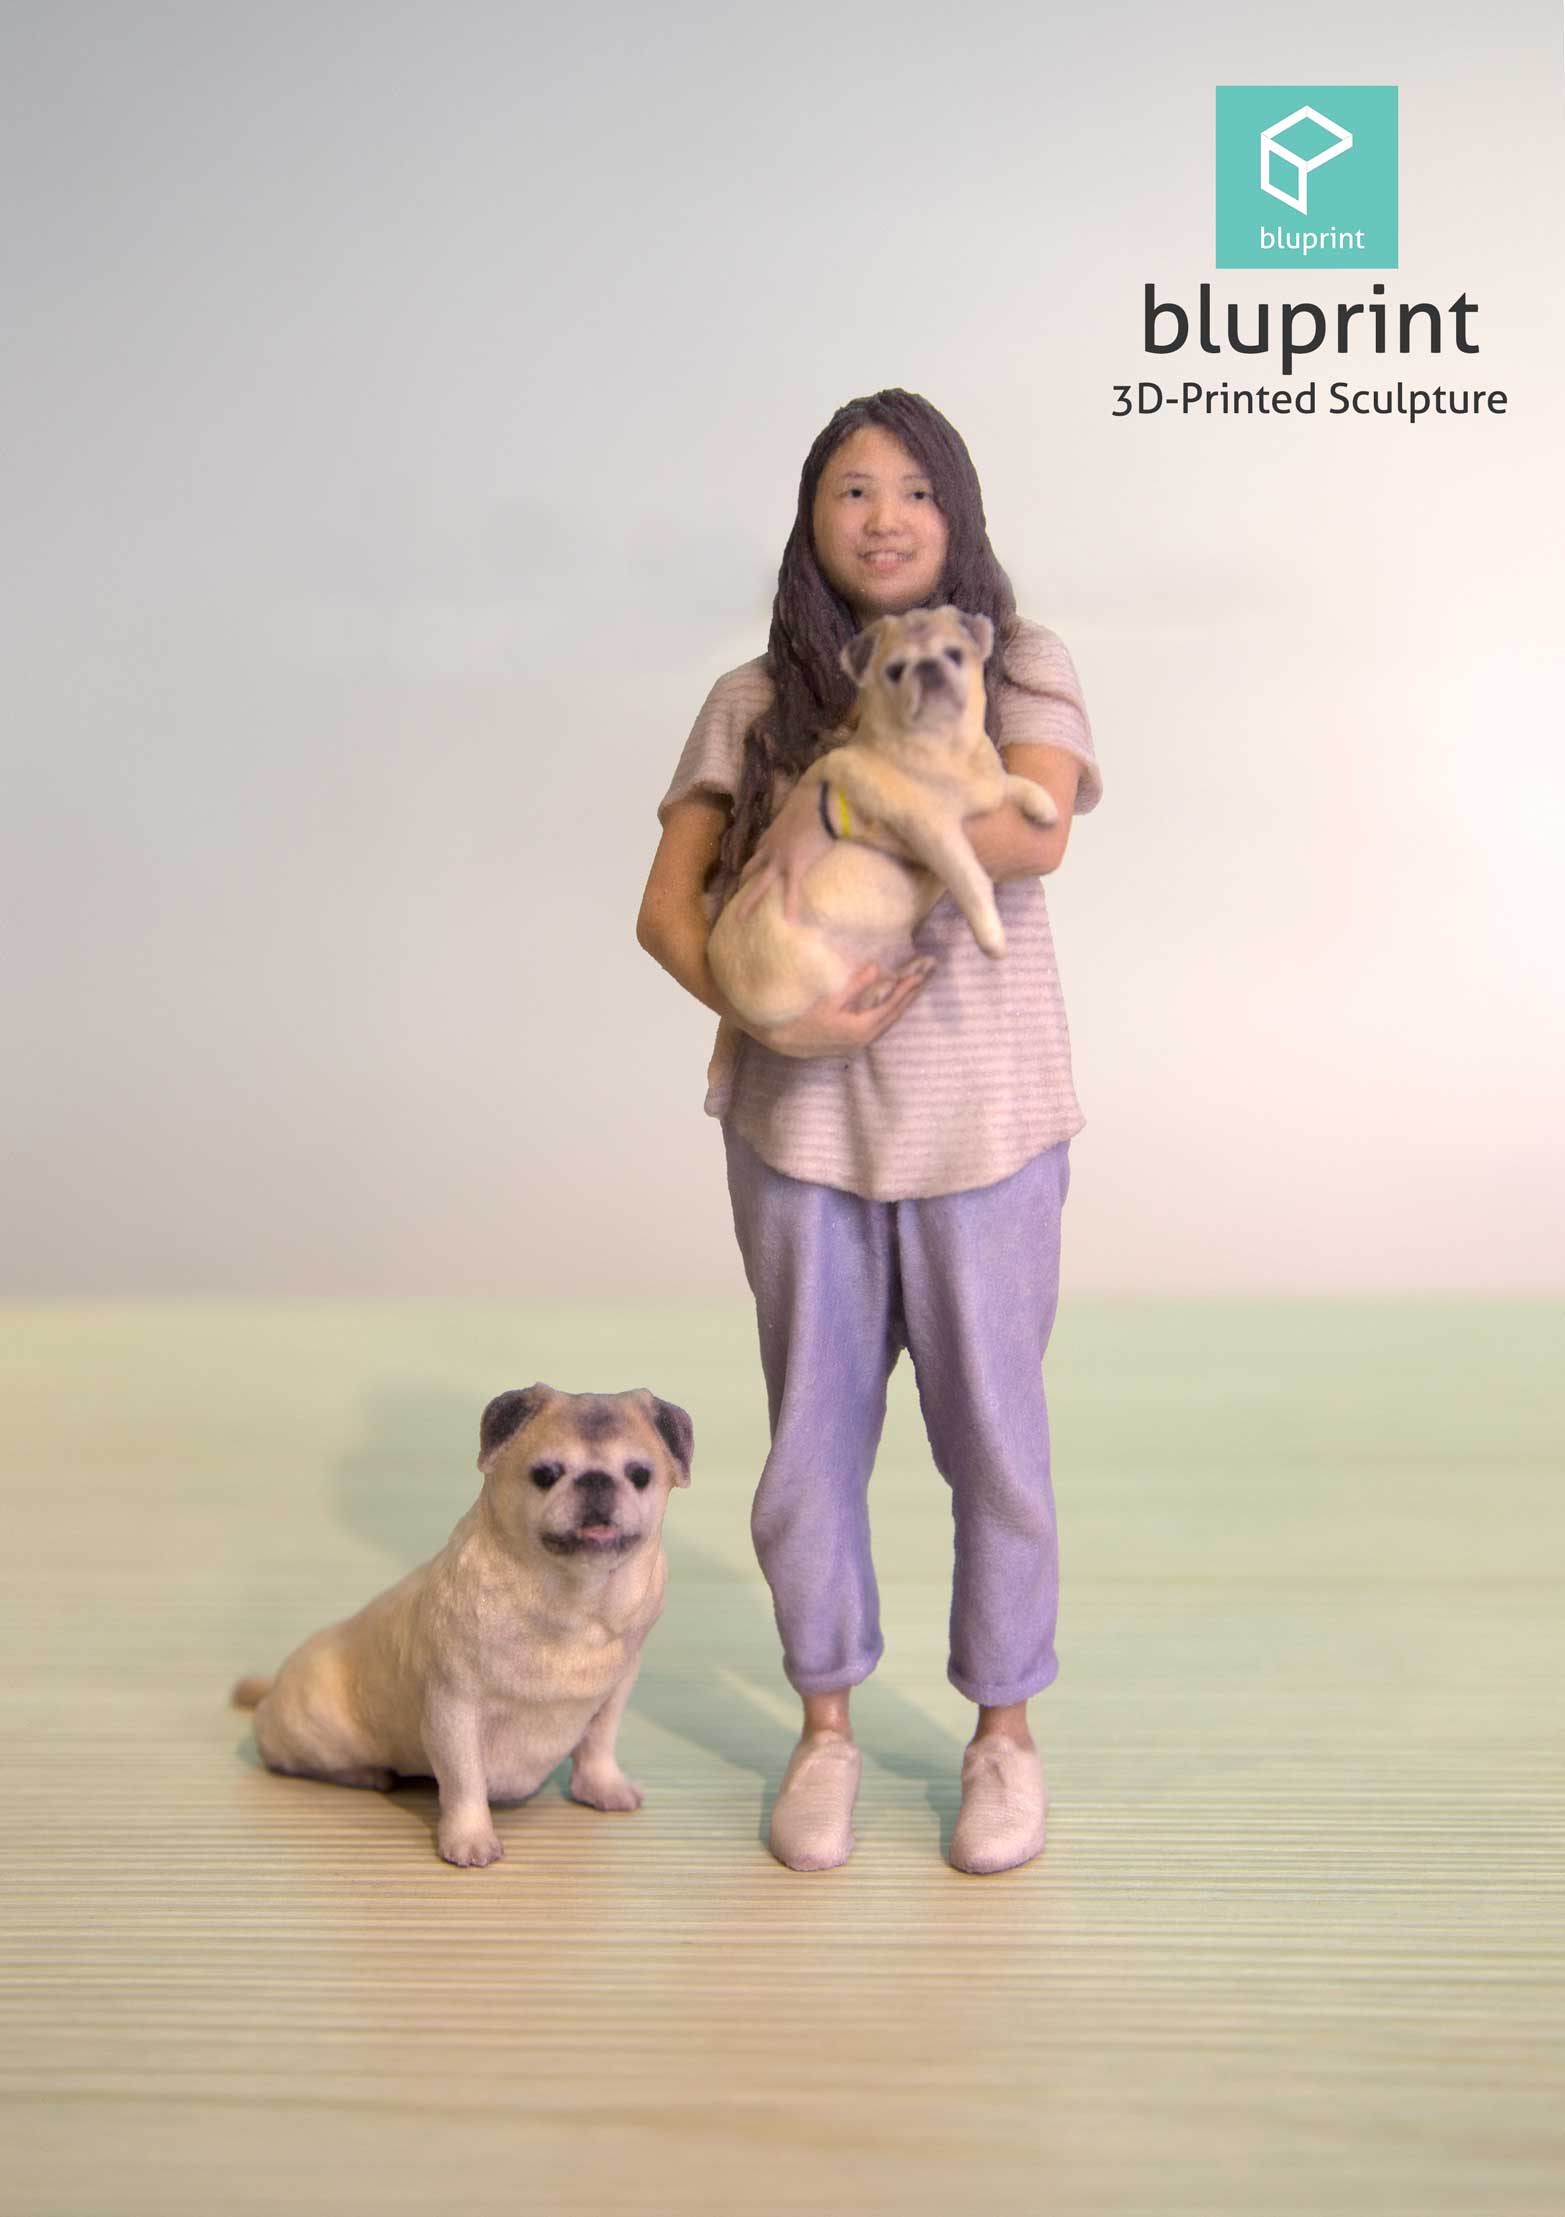 bluprint 3d printing figure sculpture hong kong girl with pug dog